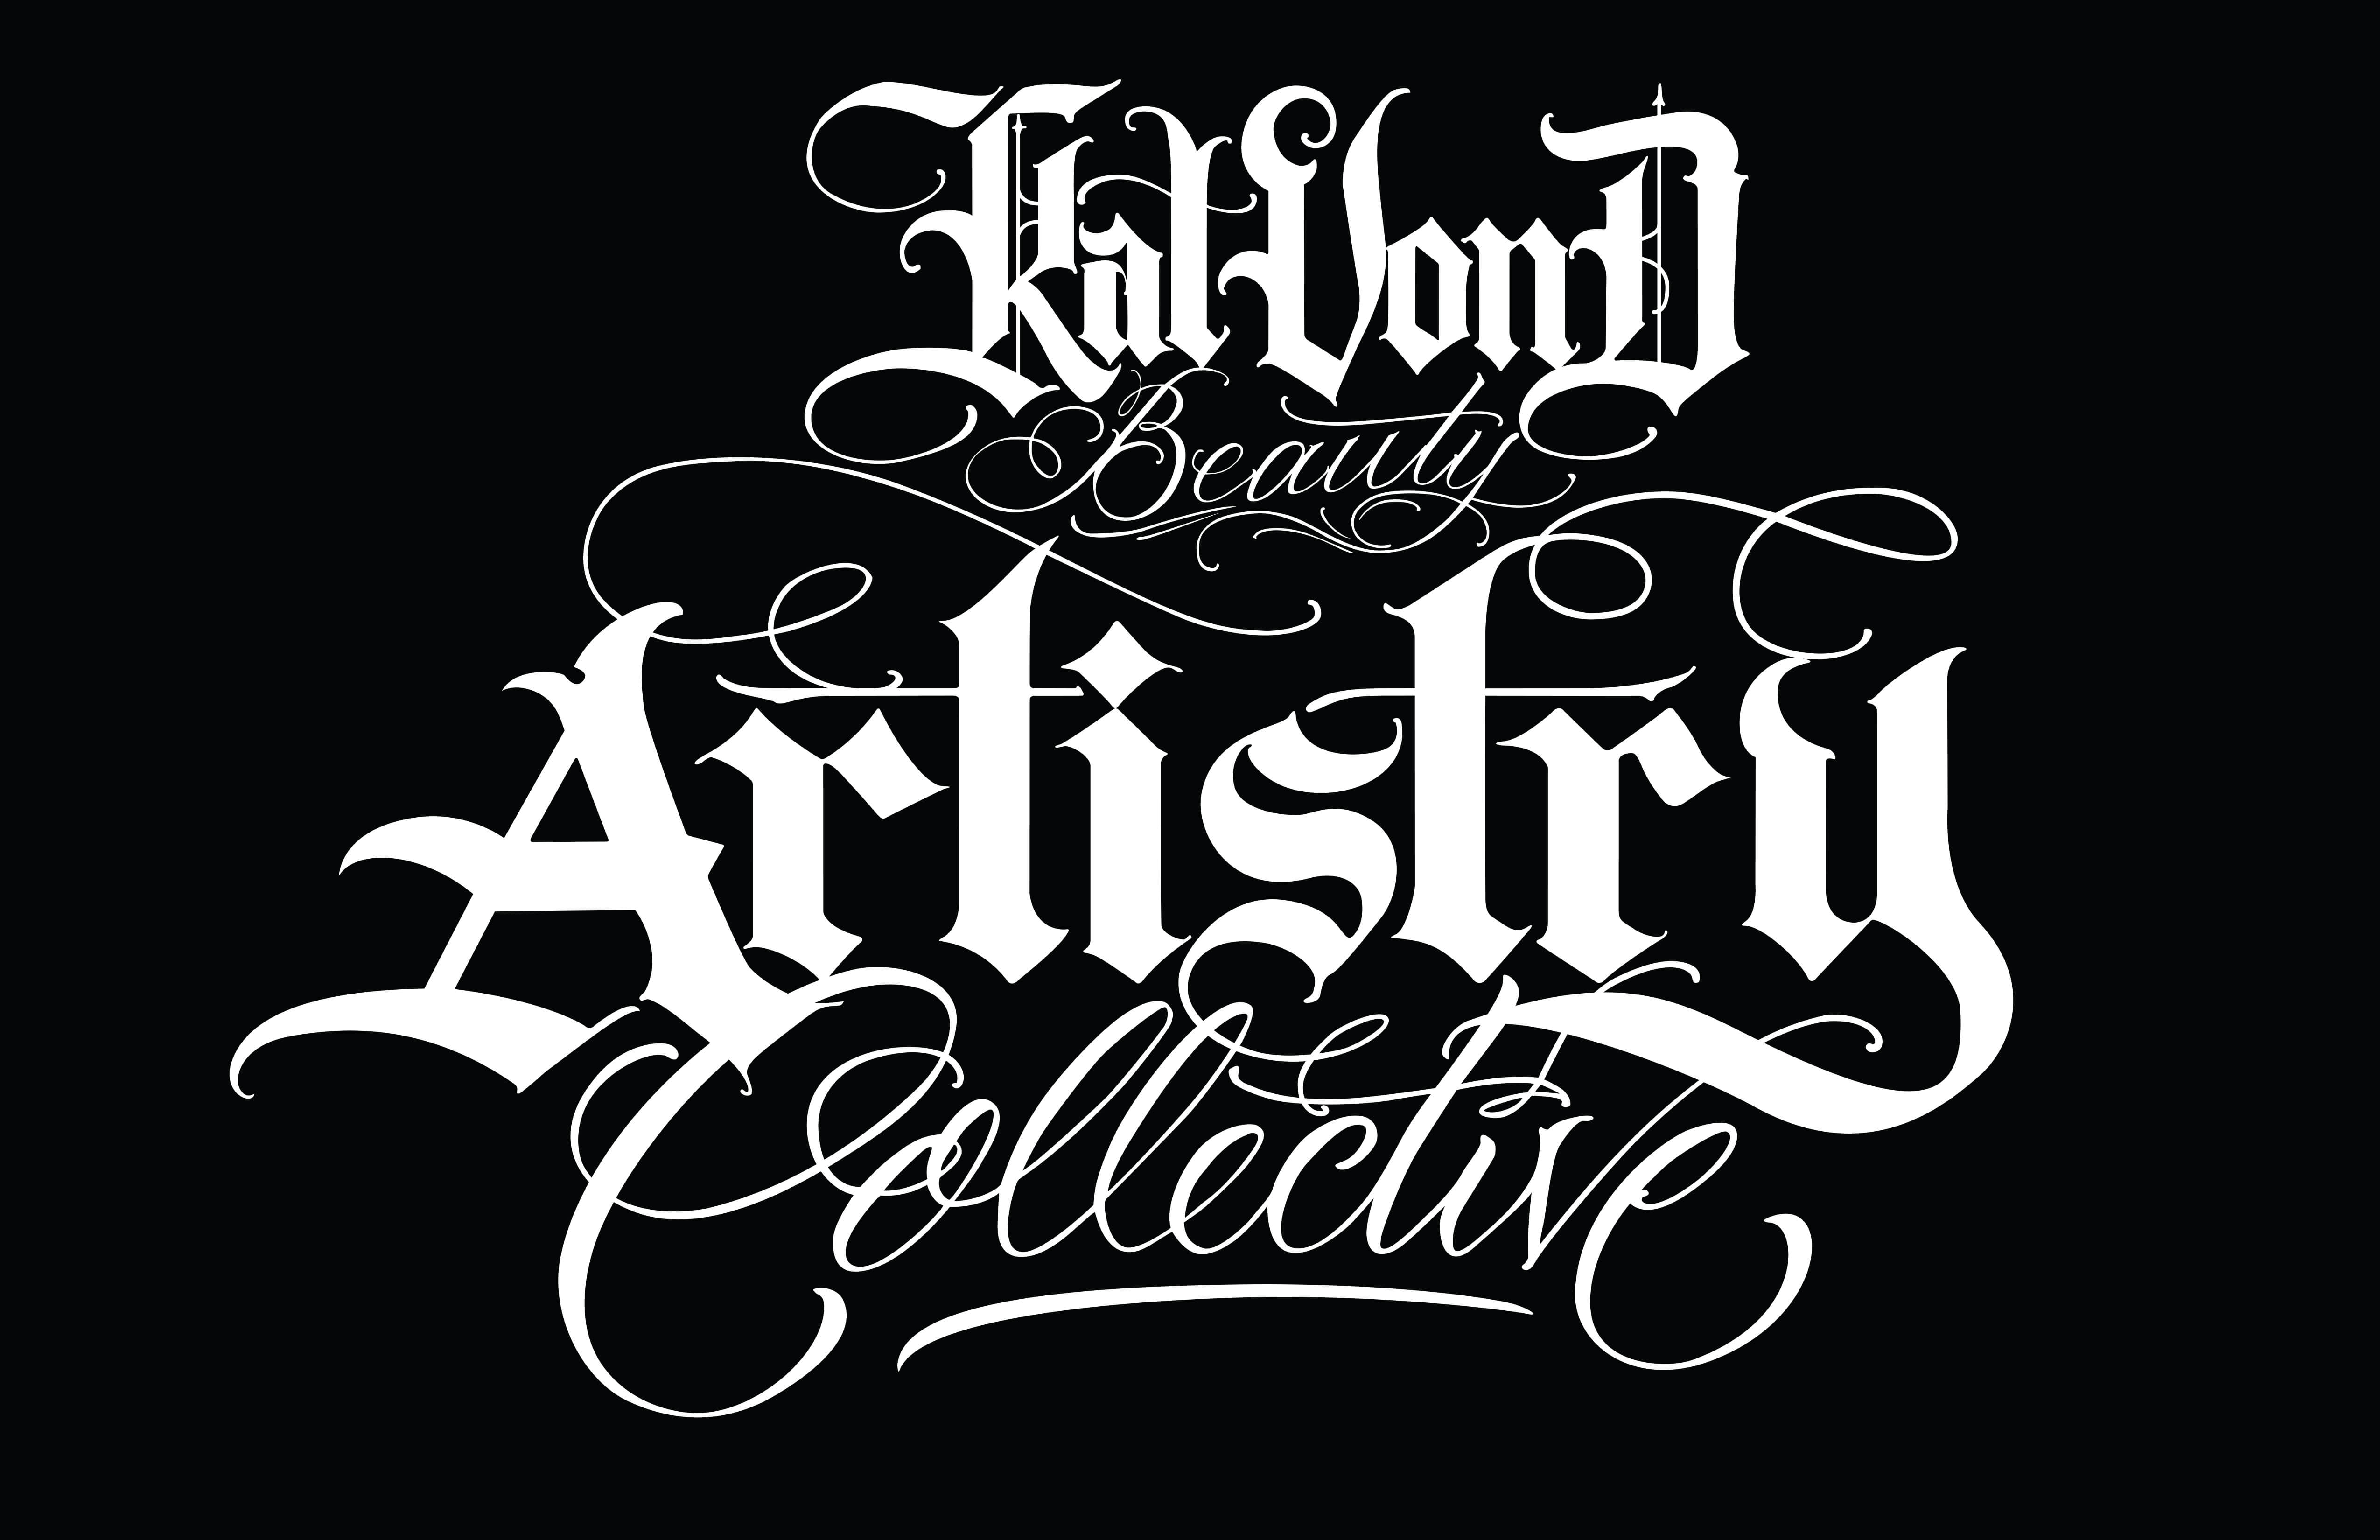 Artistry Collective